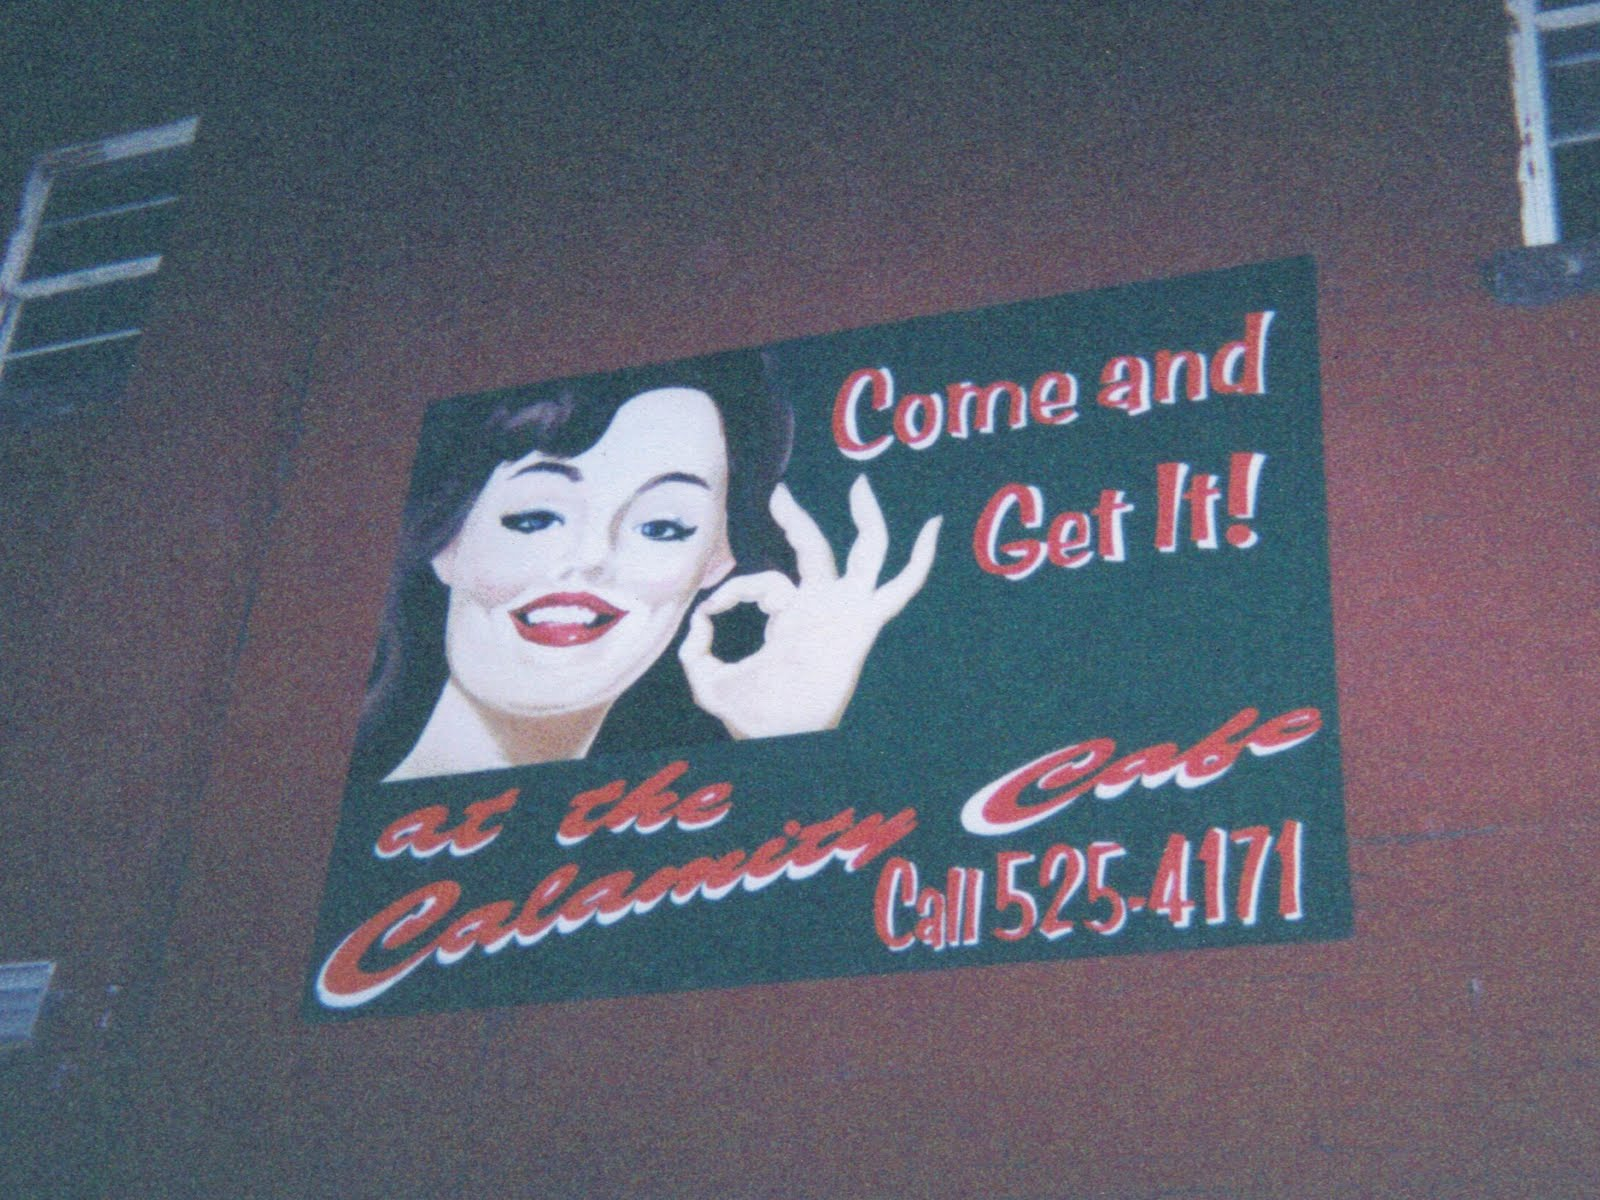 A sign inside Calamity Cafe